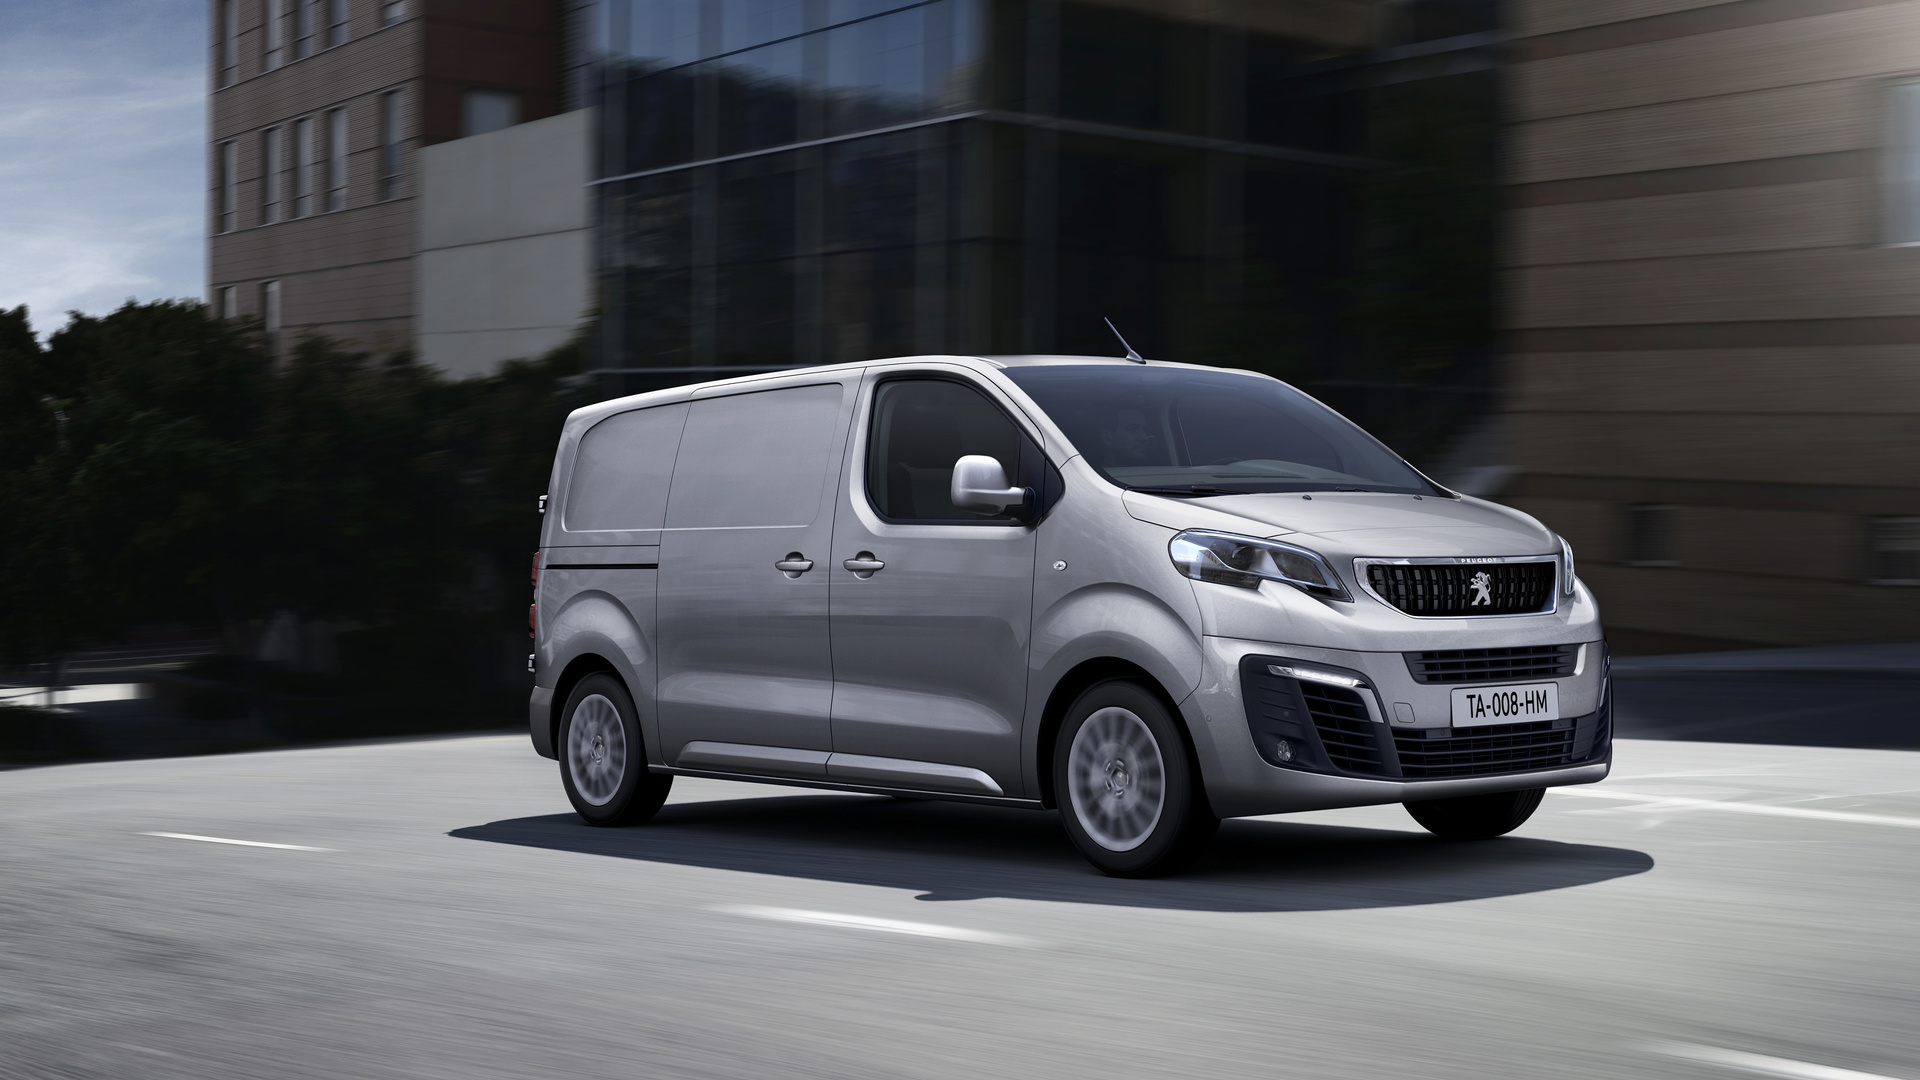 All-new Peugeot Expert goes official